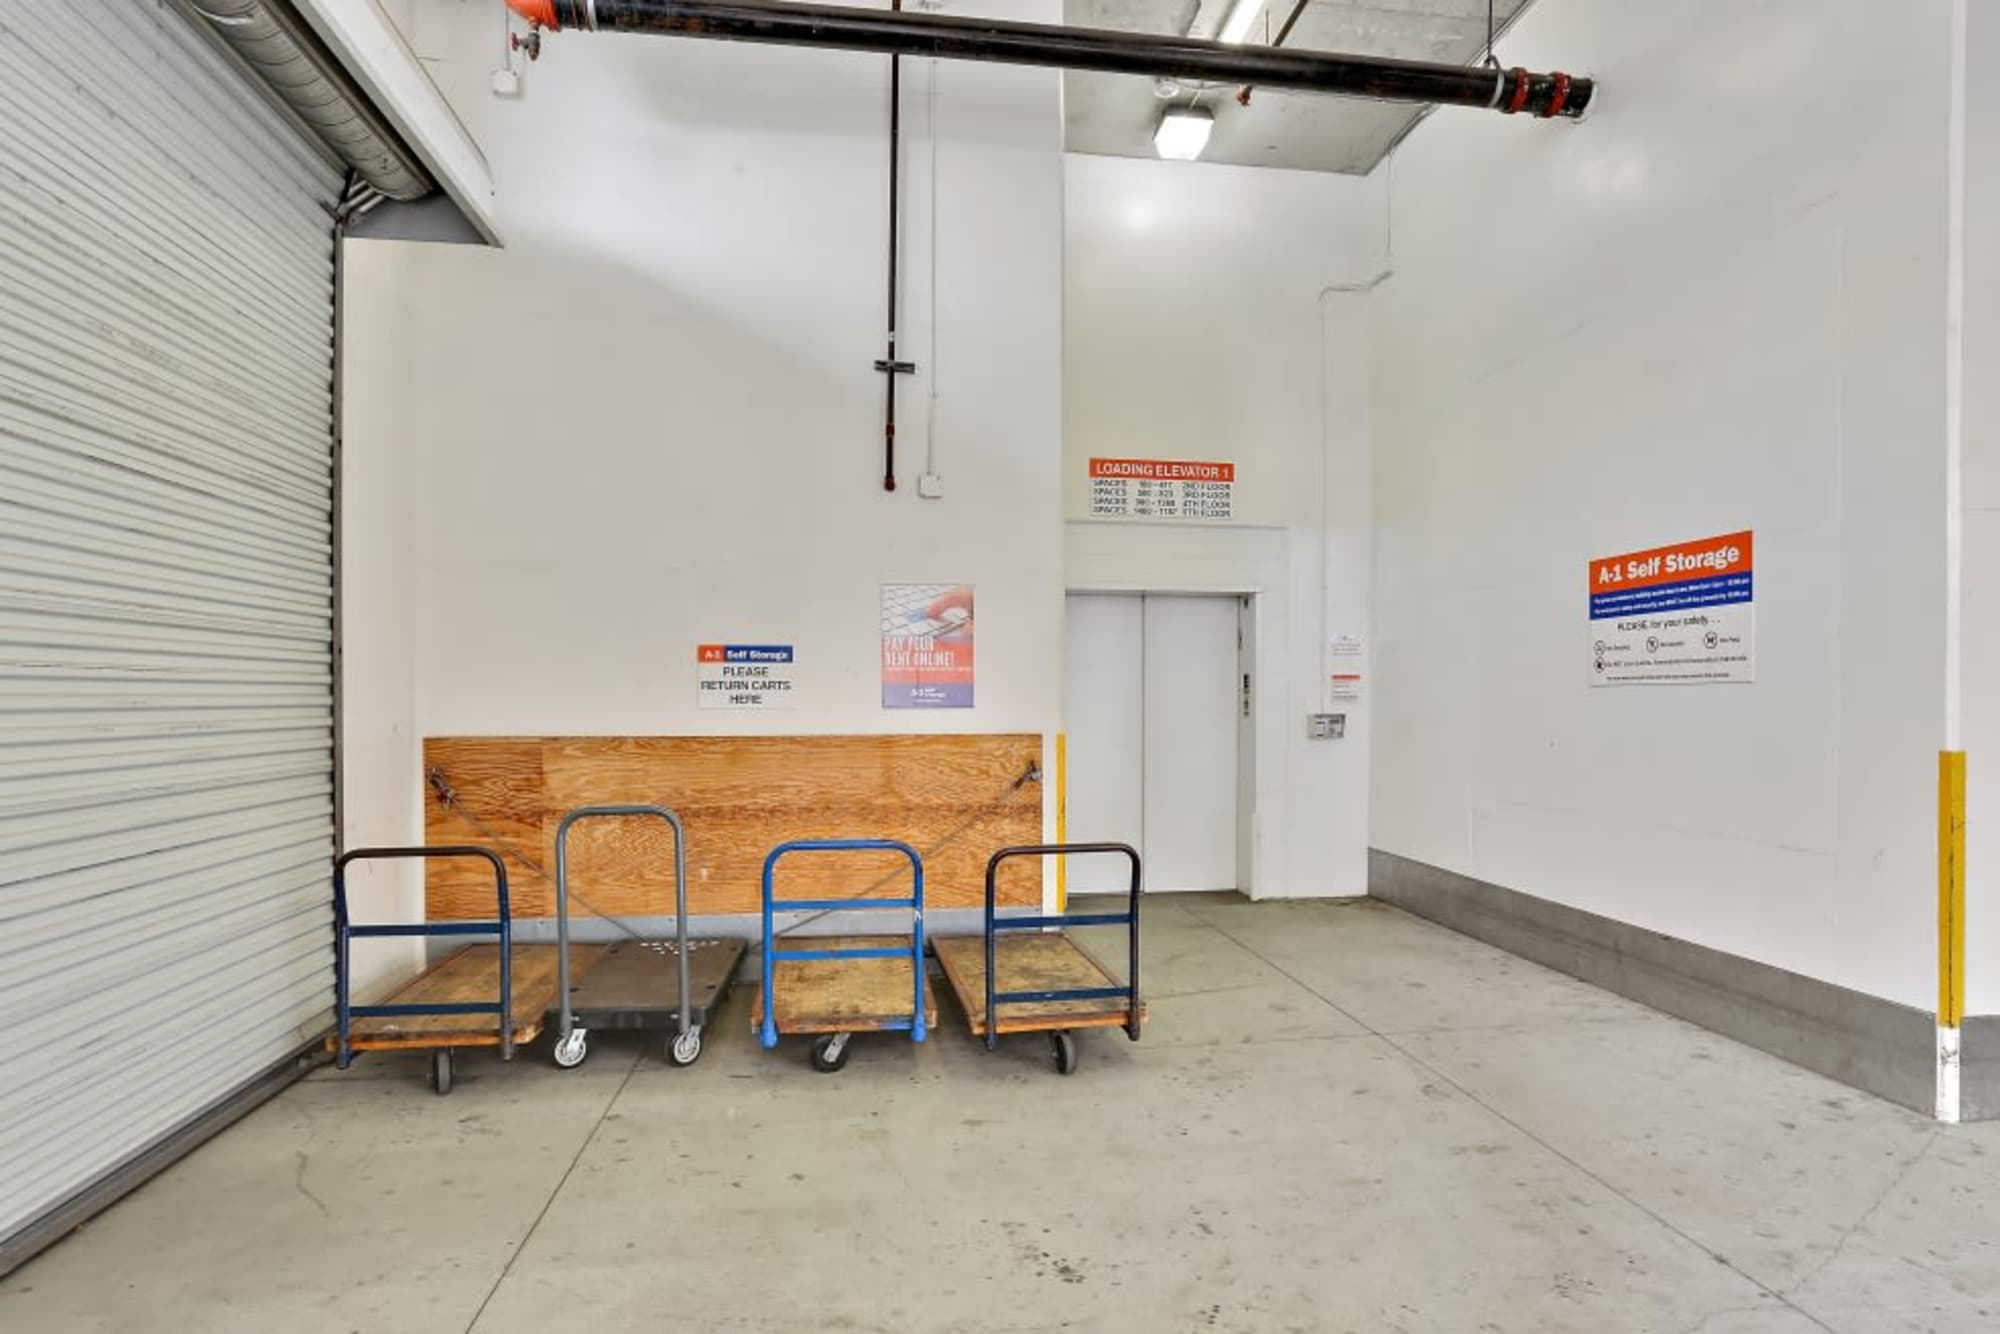 Carts and an elevator at A-1 Self Storage in San Diego, California